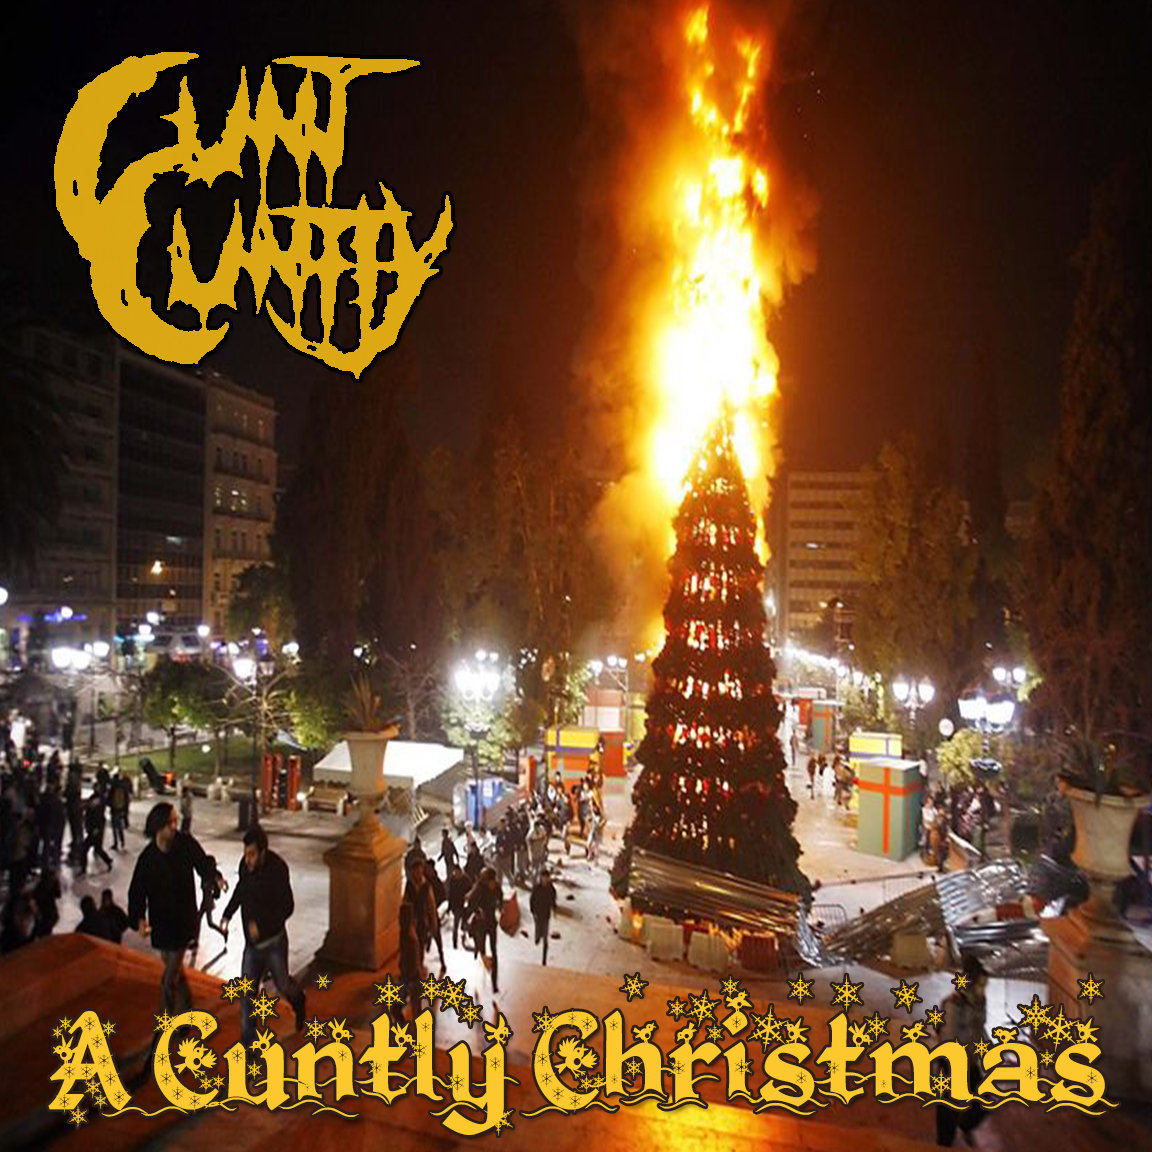 Please Come Home For Christmas Eagles.Please Come Home For Christmas Eagles Cover Cunt Cuntly